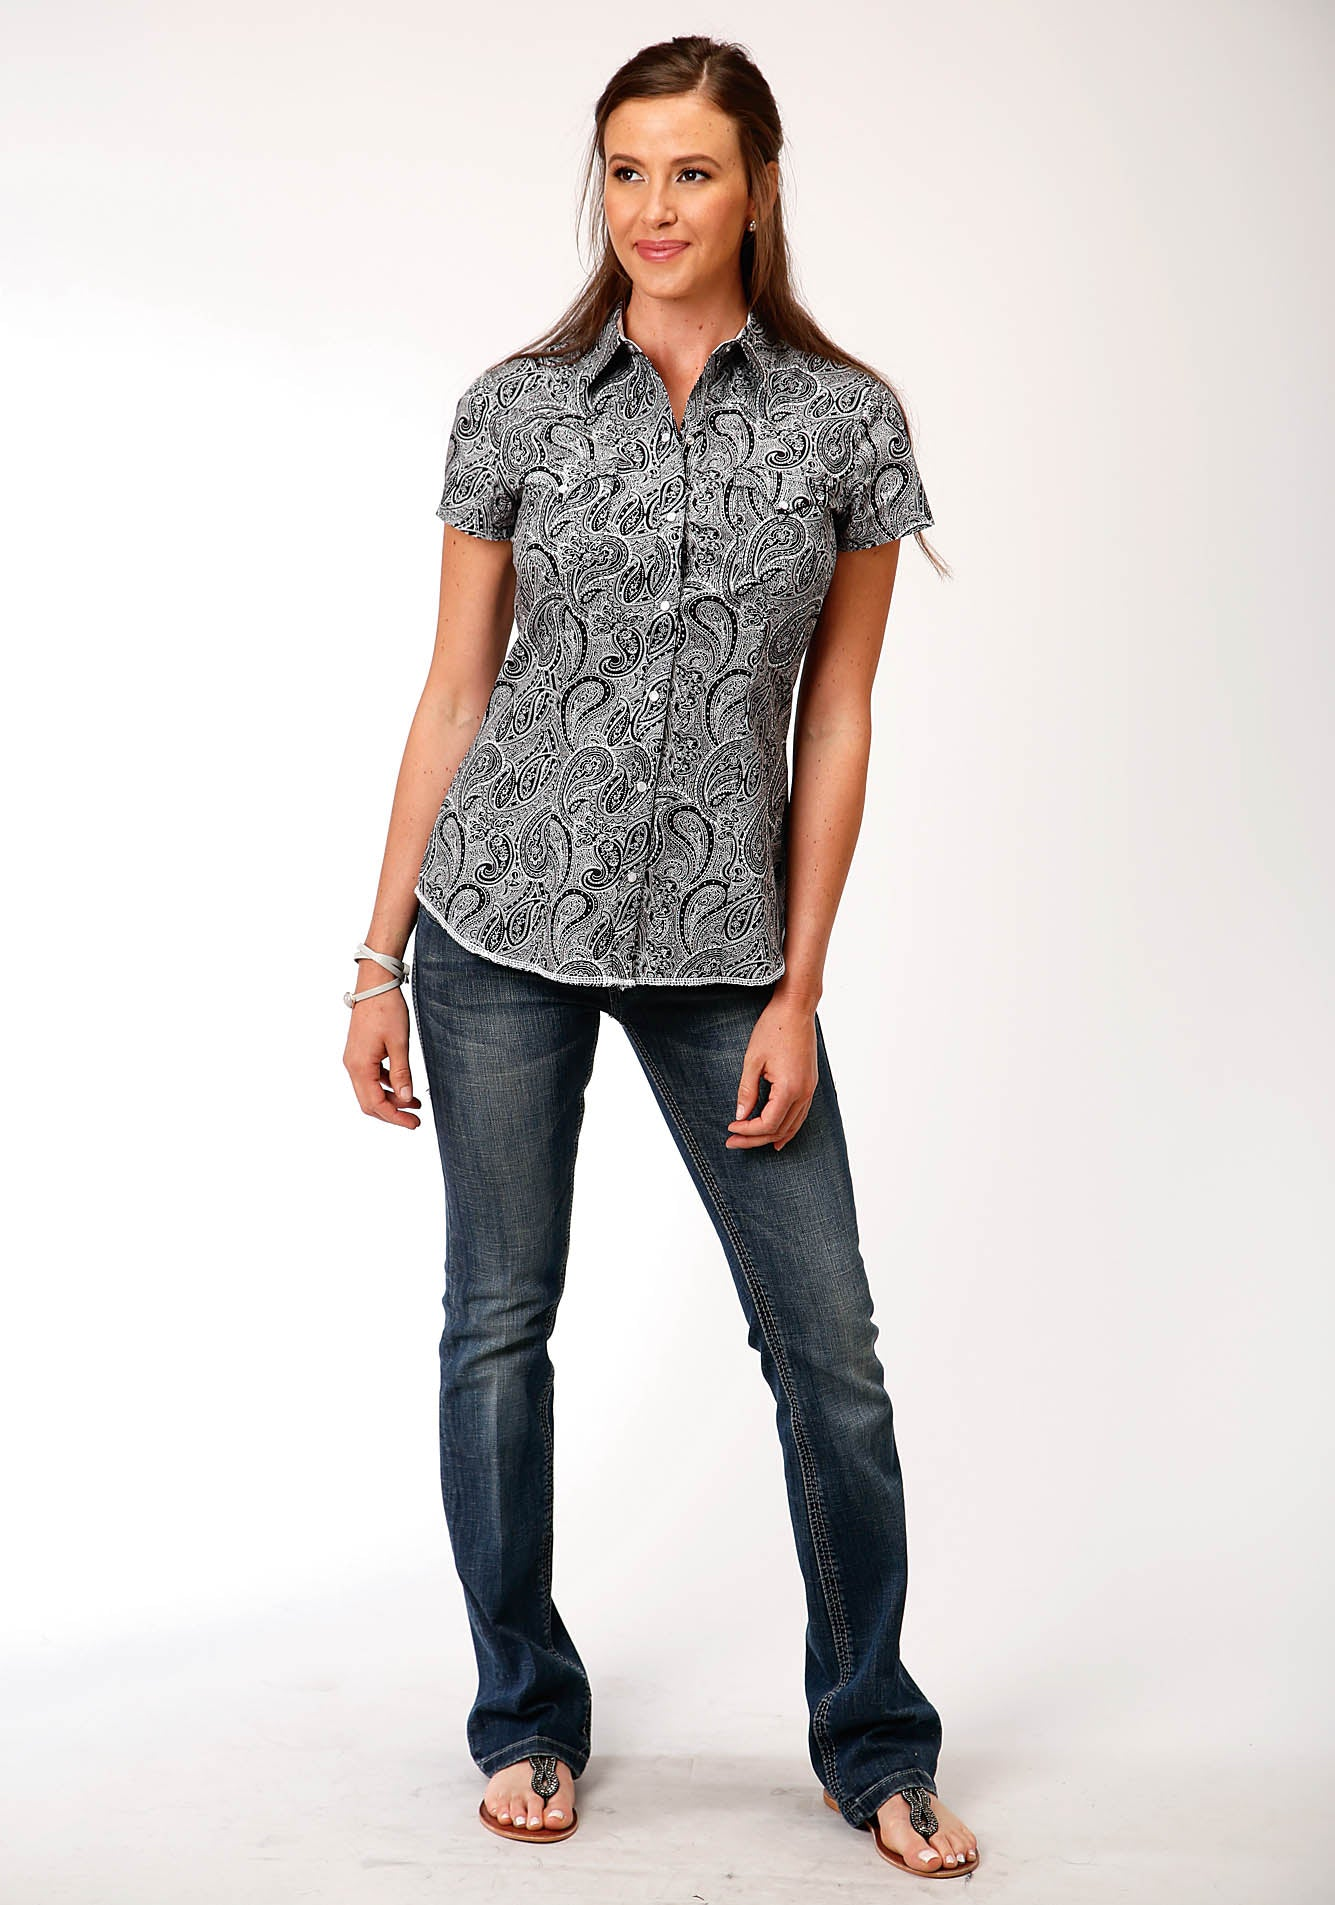 ROPER WOMENS BLACK 00186 BLACK PAISLEY WEST MADE COLLECTION SHORT SLEEVE